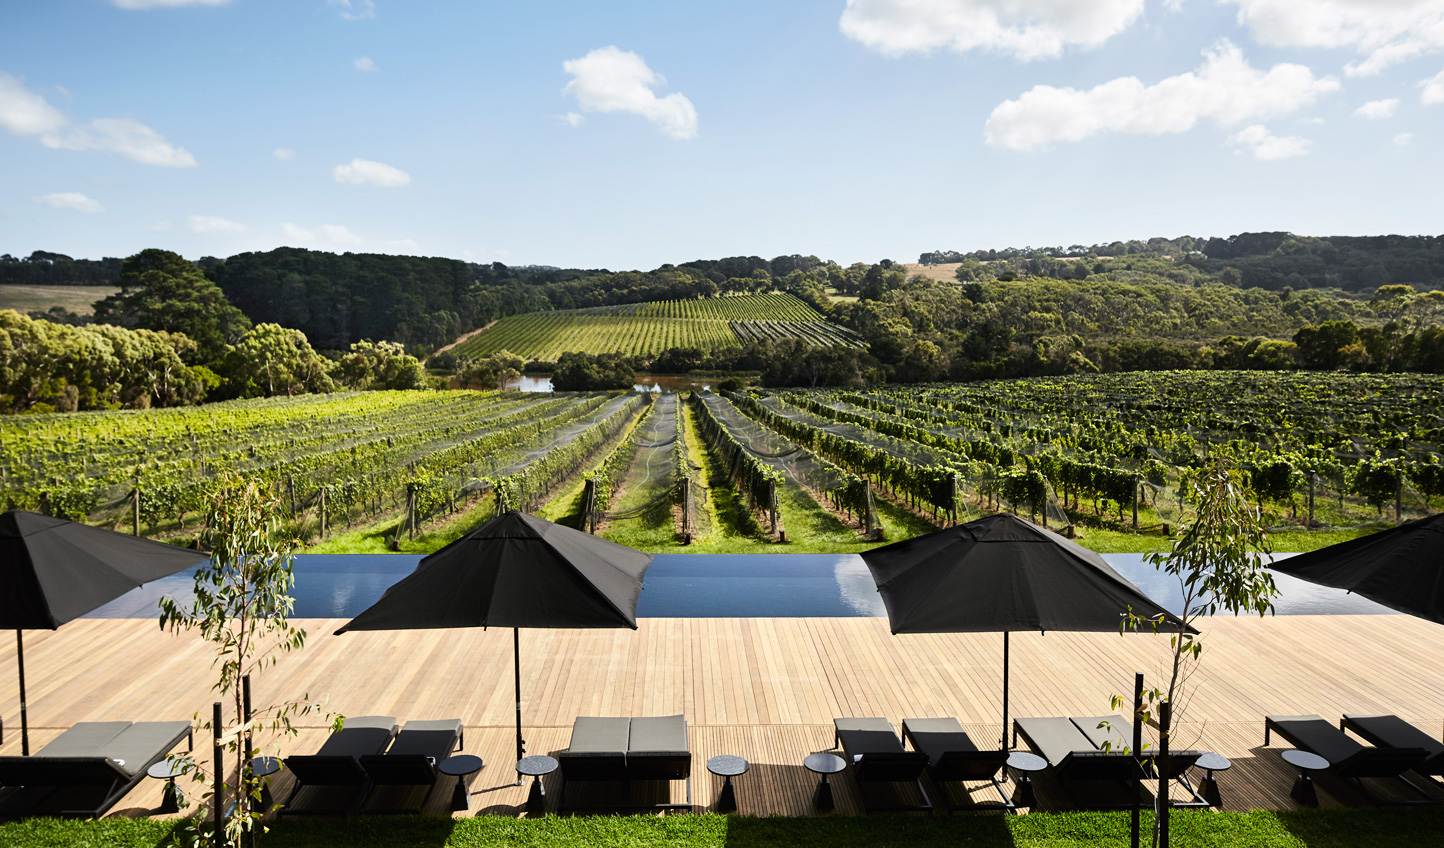 Take a dip in the pool with views out across the vines